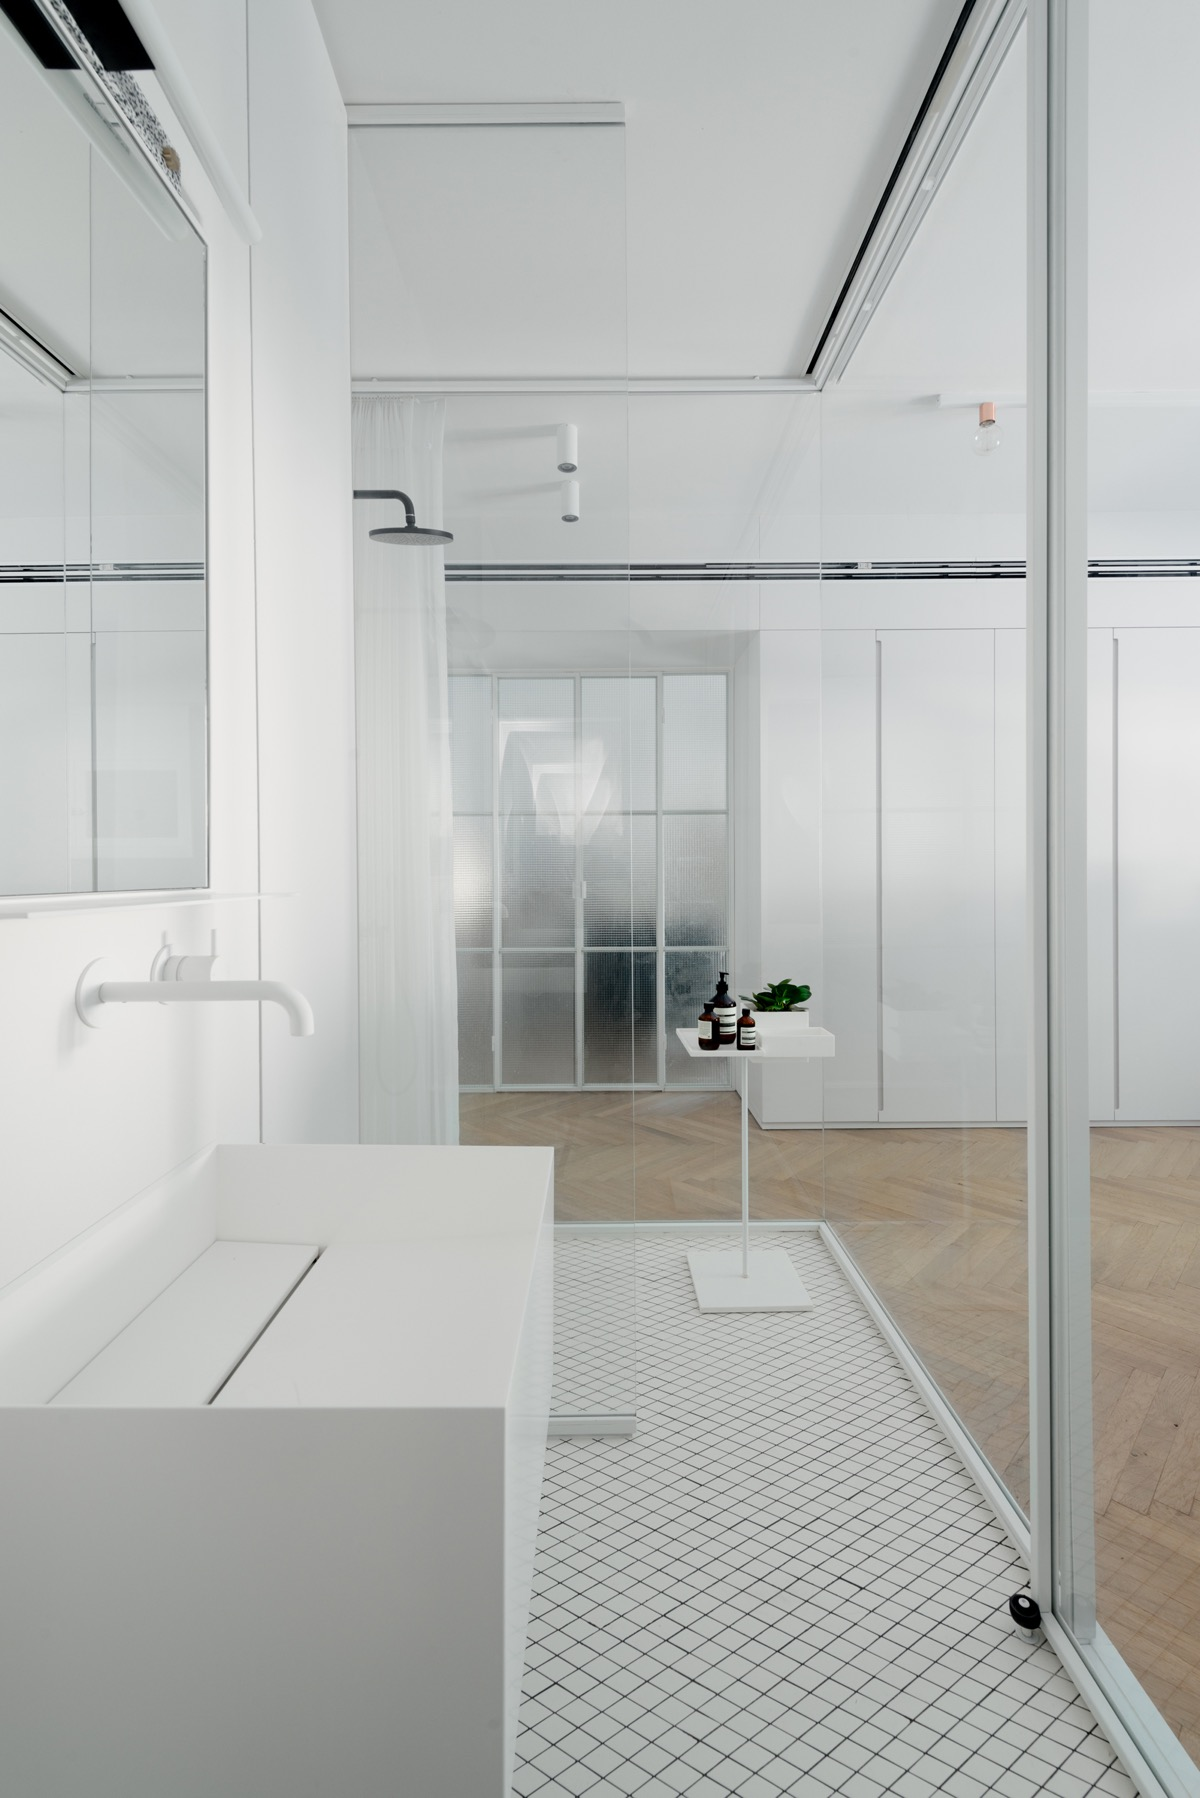 Bauhaus Style Home with Interior Glass Walls images 13